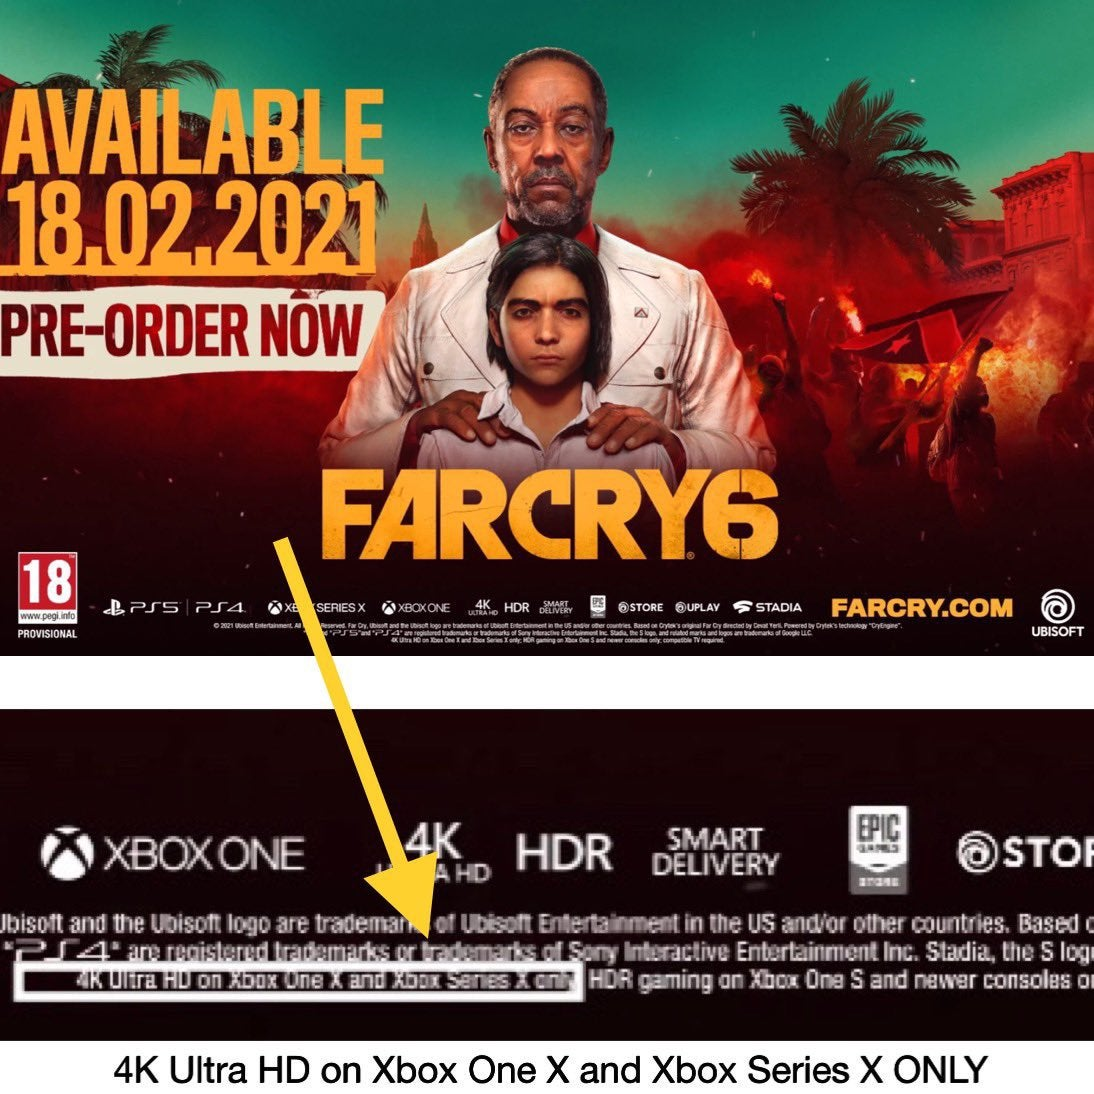 Ubisoft Support On Twitter Amending Our Previous Reply The Highlighted Text In The Above Image Refers Only To The Xbox Systems Which Will Run Fc6 In 4k Ultra Hd